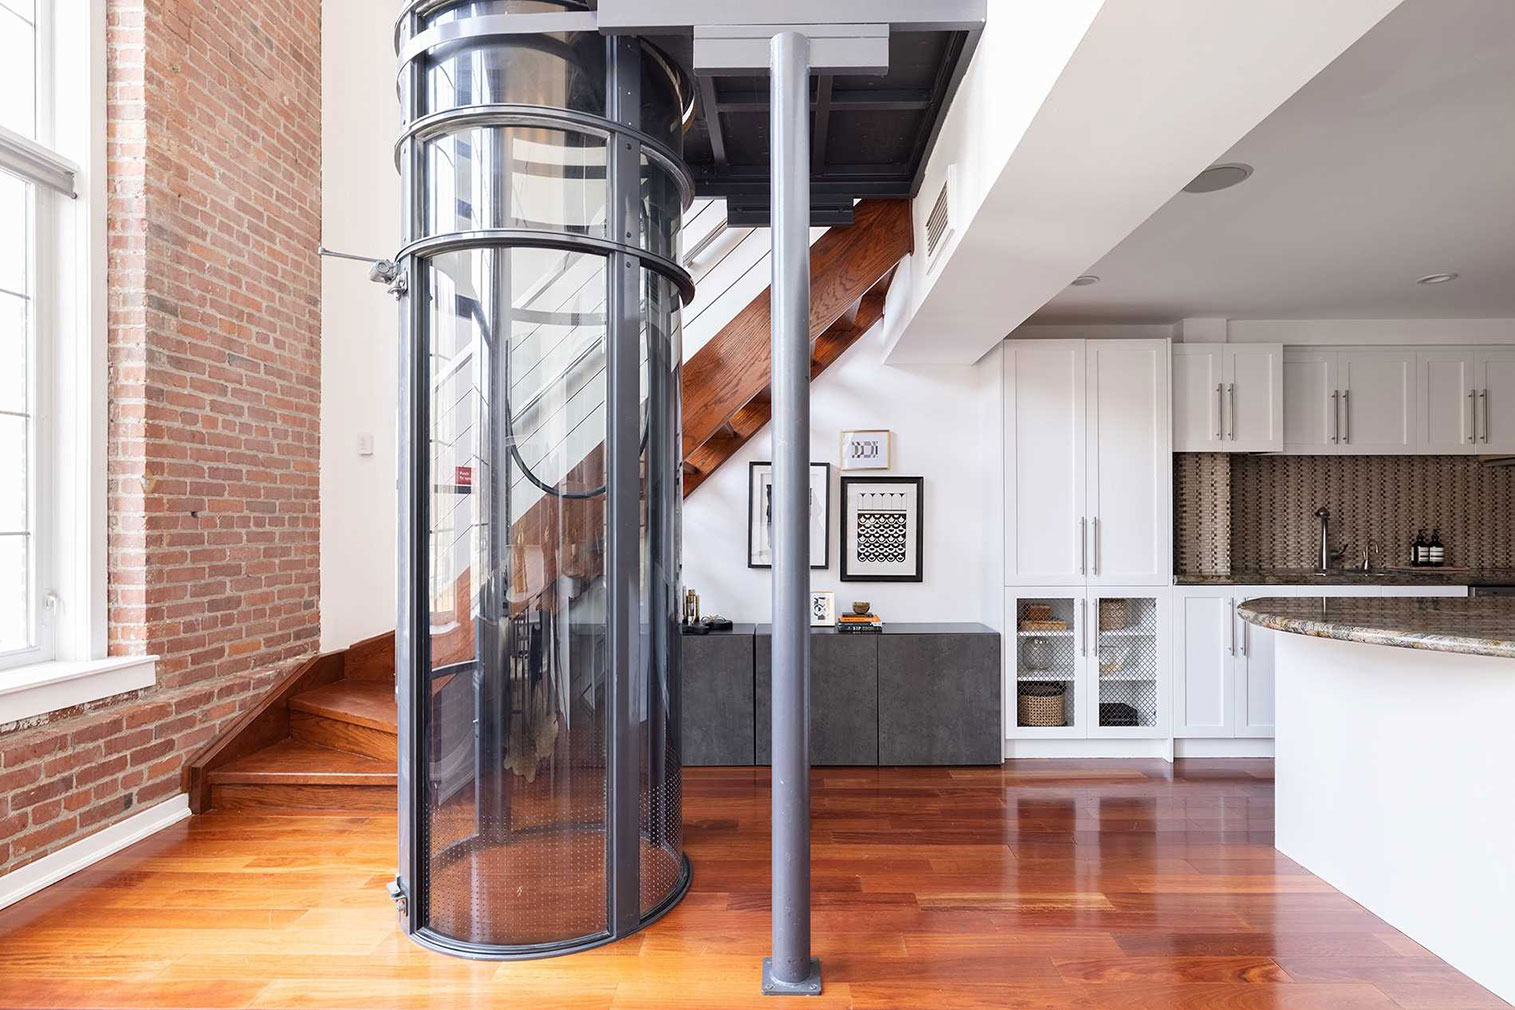 The apartment is serviced by a glass-enclosed elevator